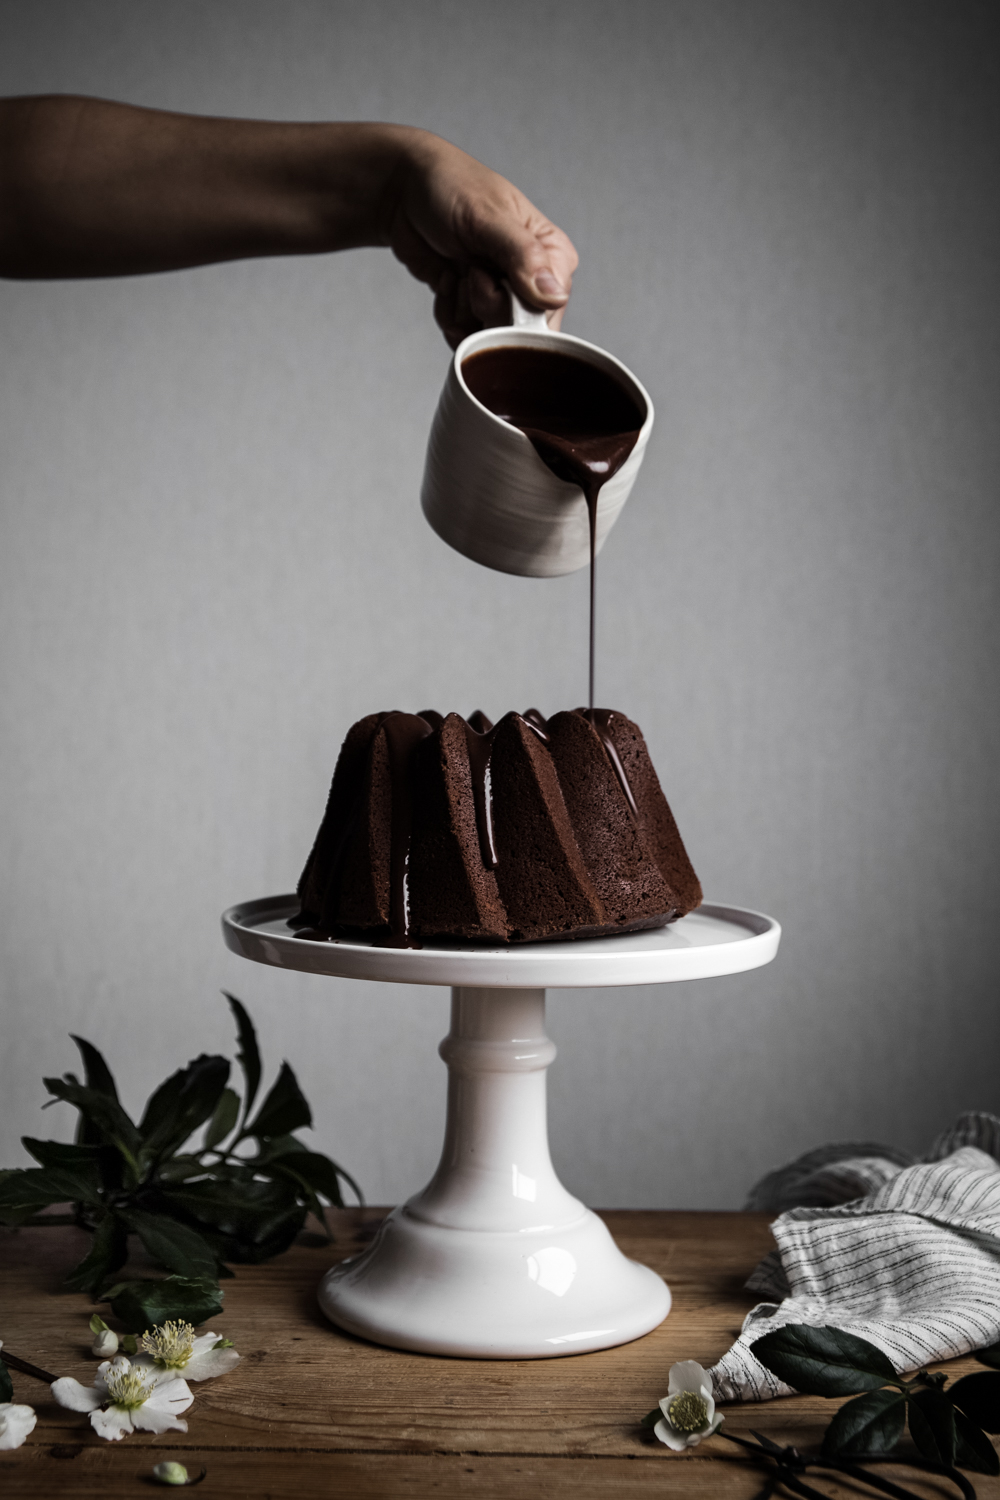 Bundt cake tout chocolat - Ophelie's Kitchen Book - Ophelie Lauret-22